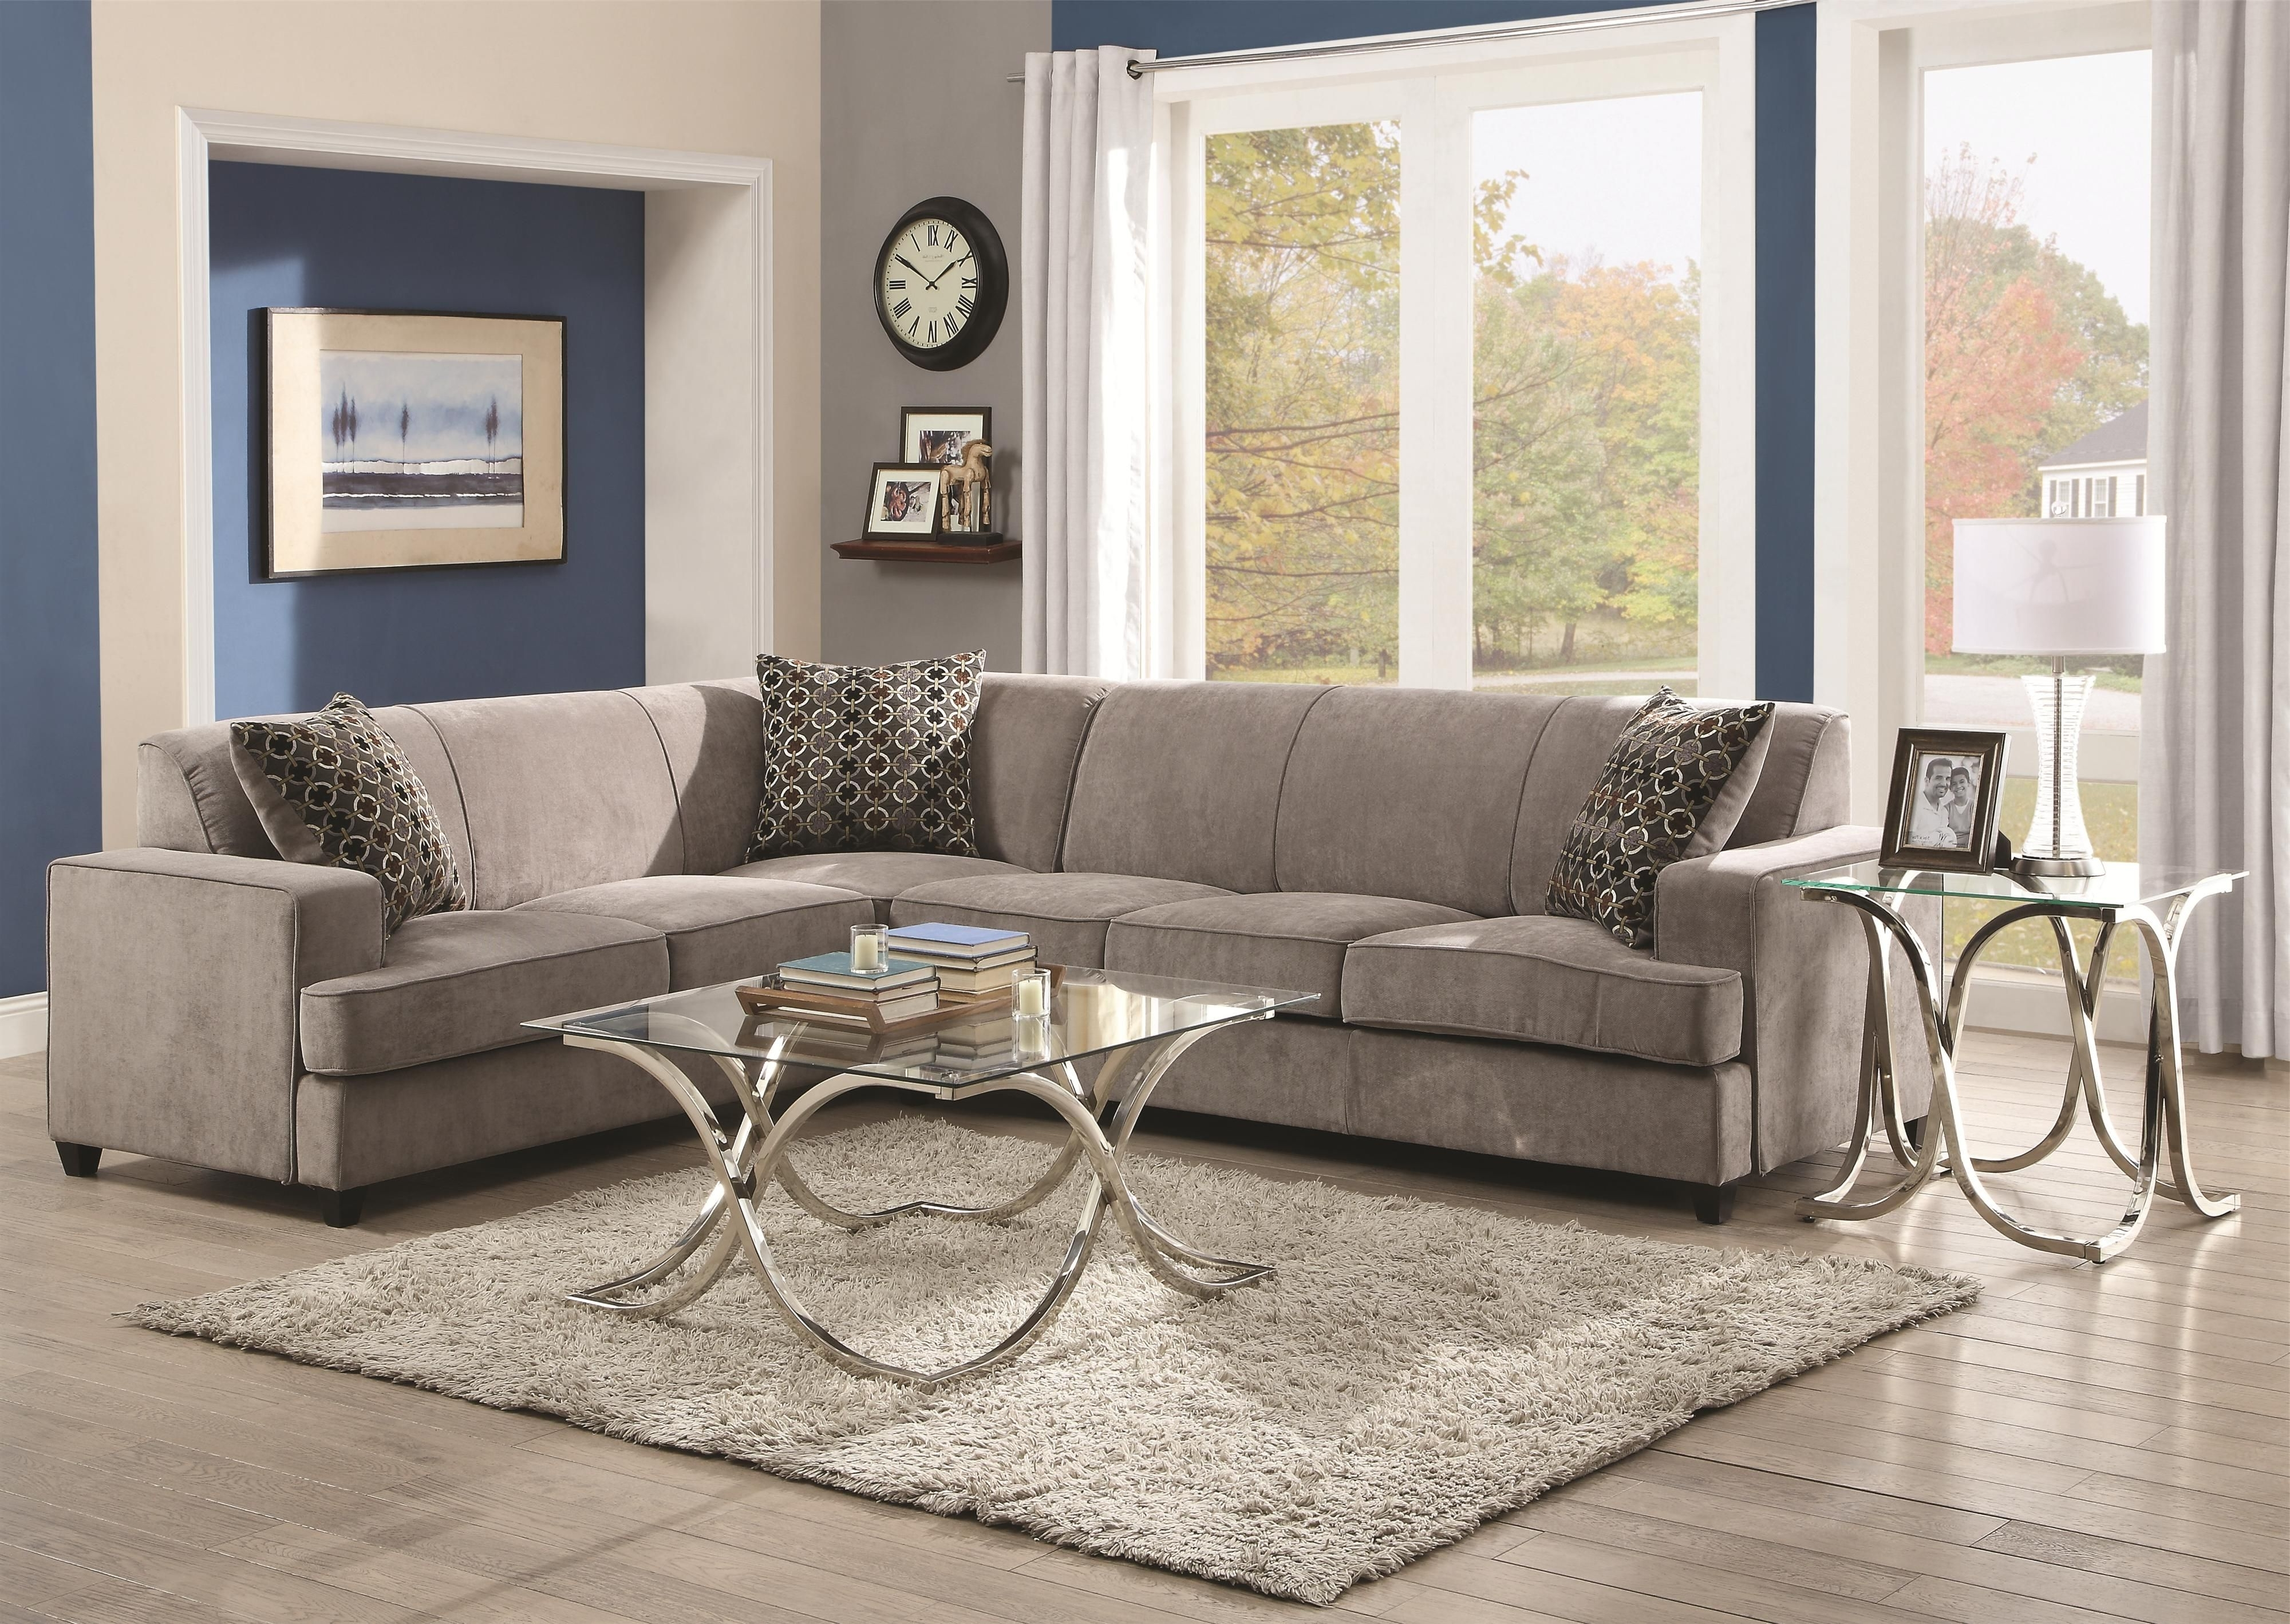 Widely Used Tess Sectional Sofa For Cornerscoaster (View 20 of 20)